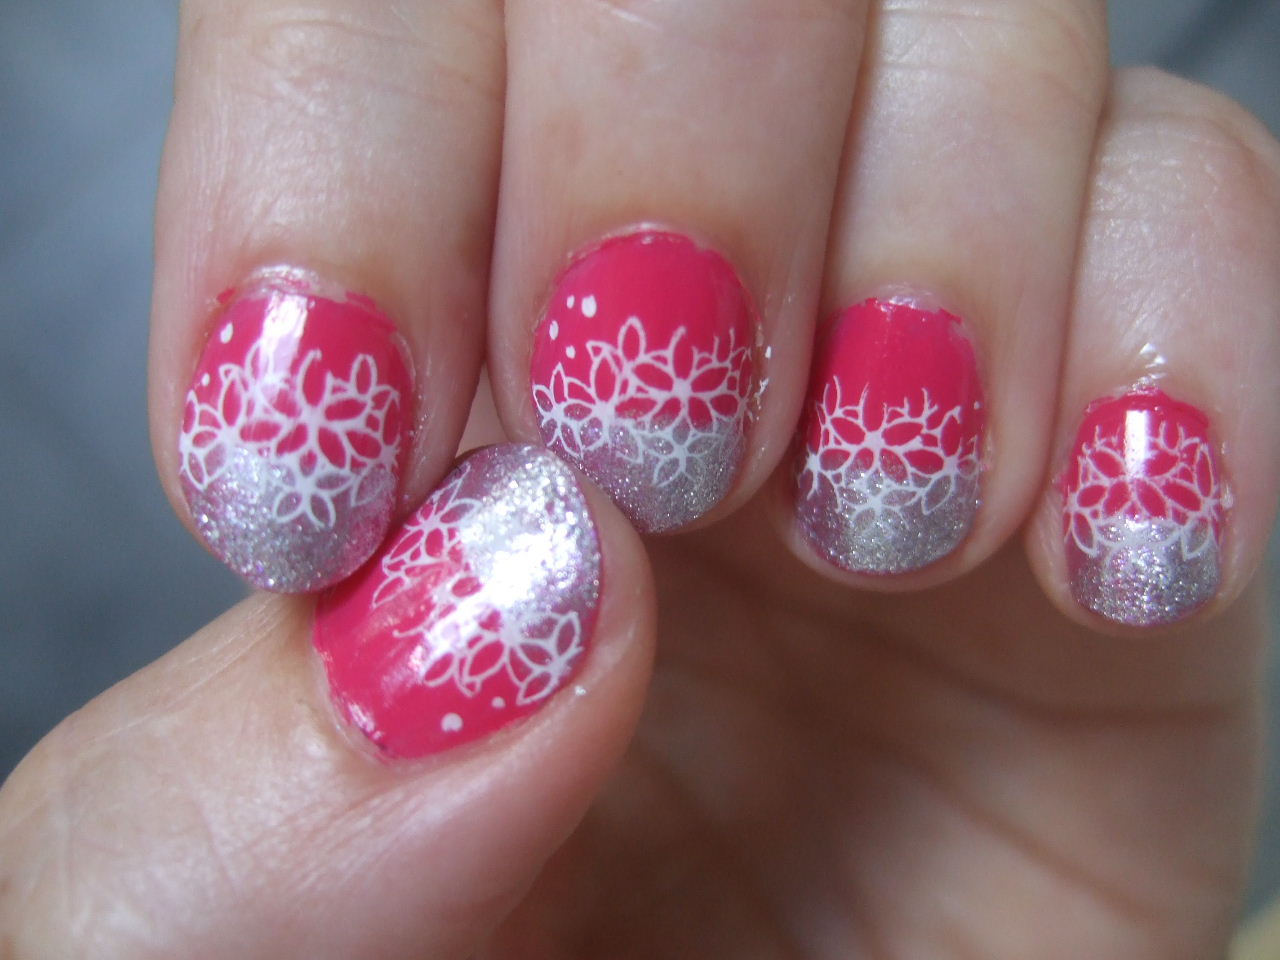 Joanne's nail art ideas: then came konad